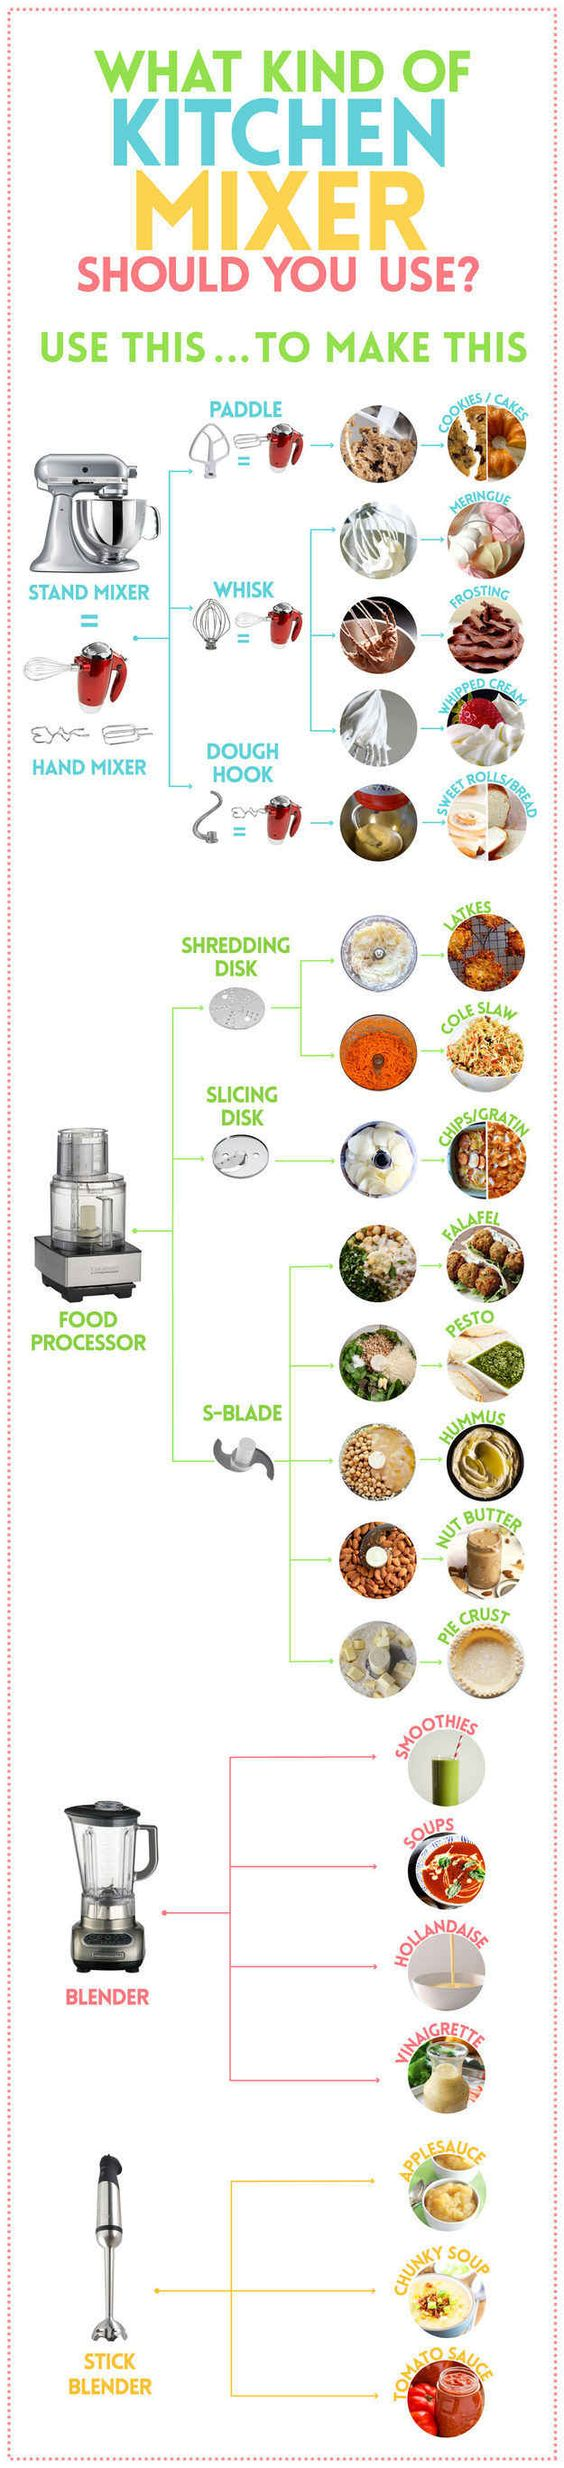 For making sure you're using the right kitchen appliance.